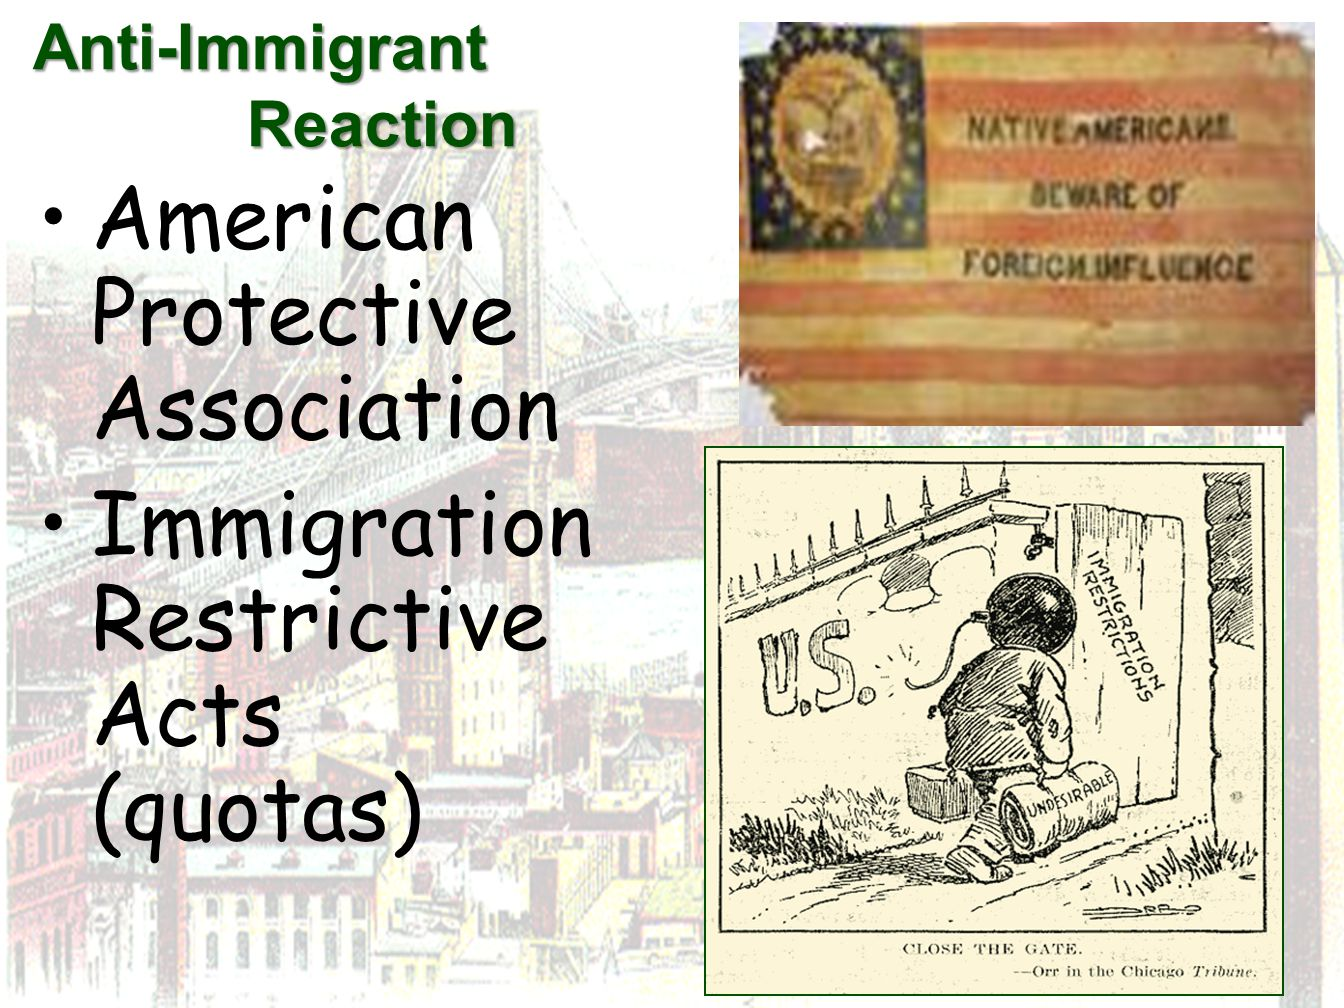 Anti-Immigrant Reaction Anti-Immigrant Reaction American Protective Association Immigration Restrictive Acts (quotas)